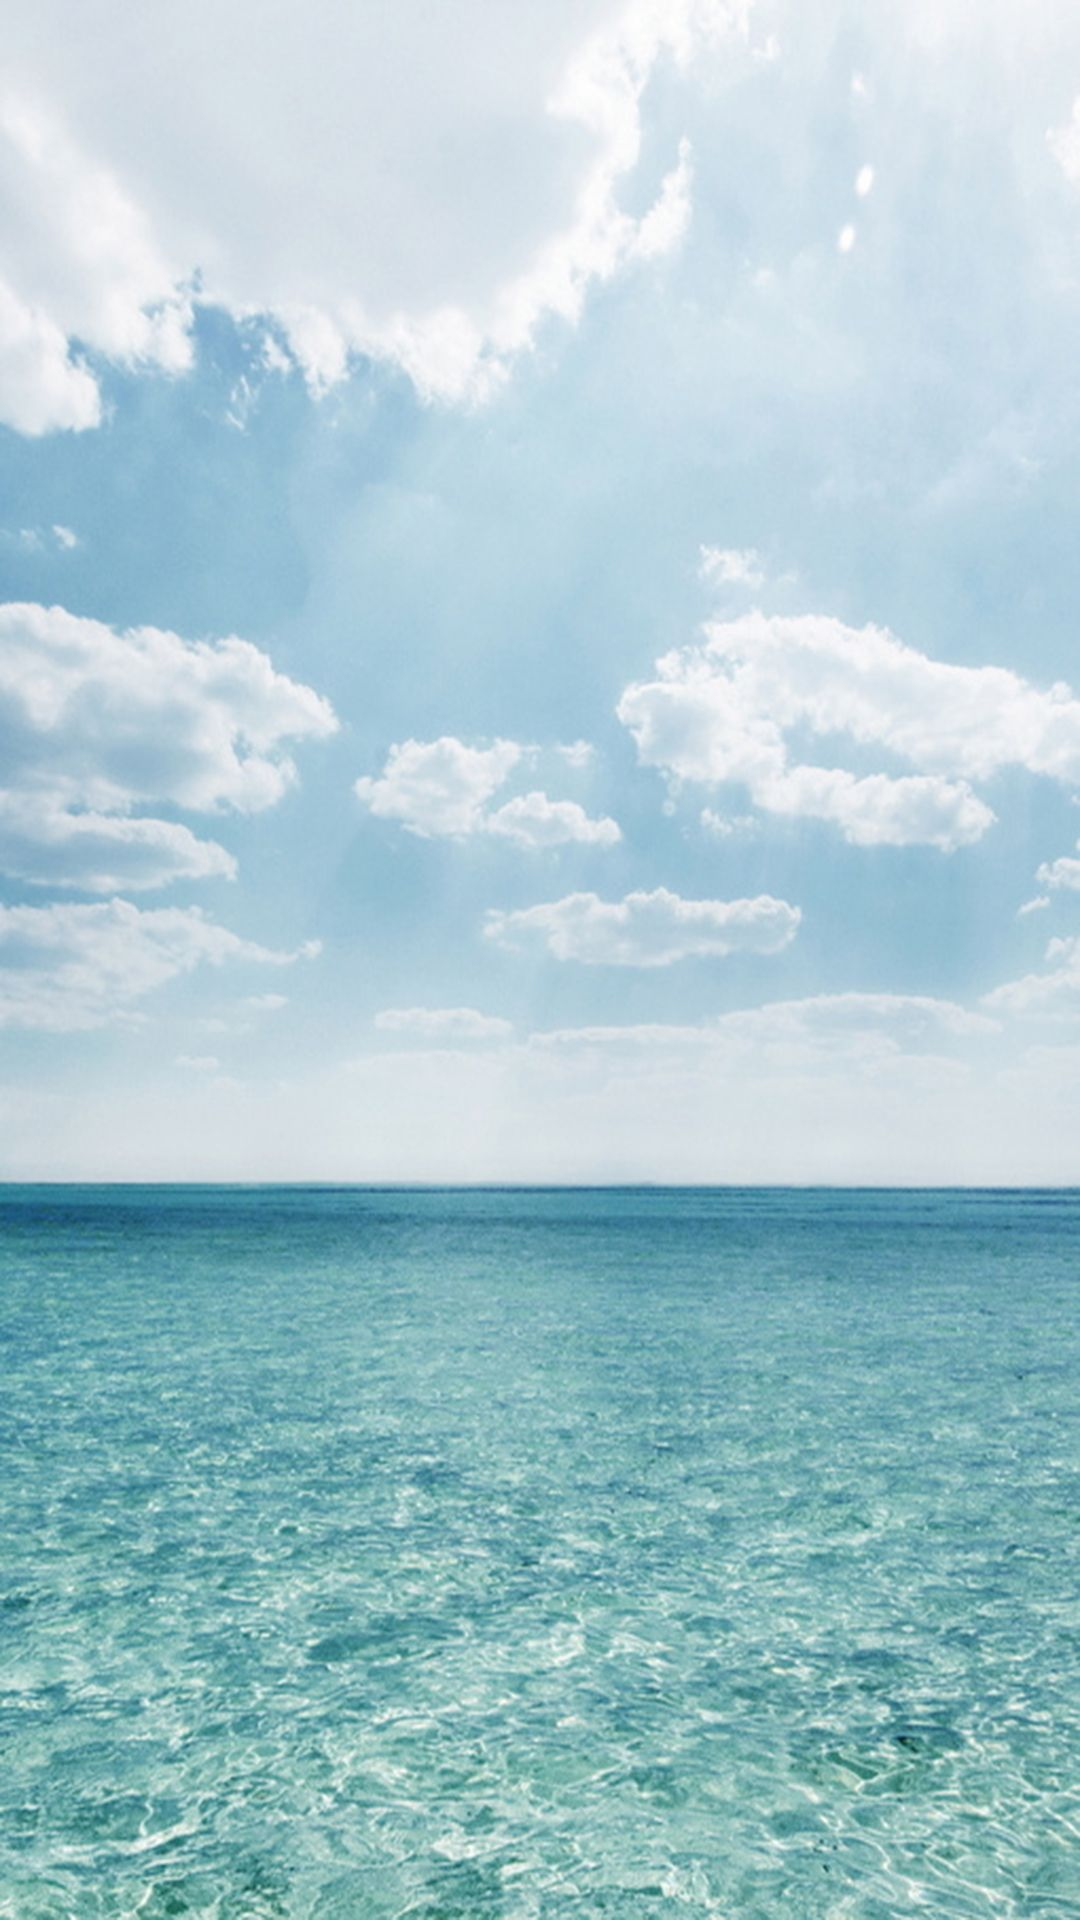 Sea Ocean Beach Sand Background Sky Tropical Holiday, Backgrounds, Wallpaper, Poster, Banne